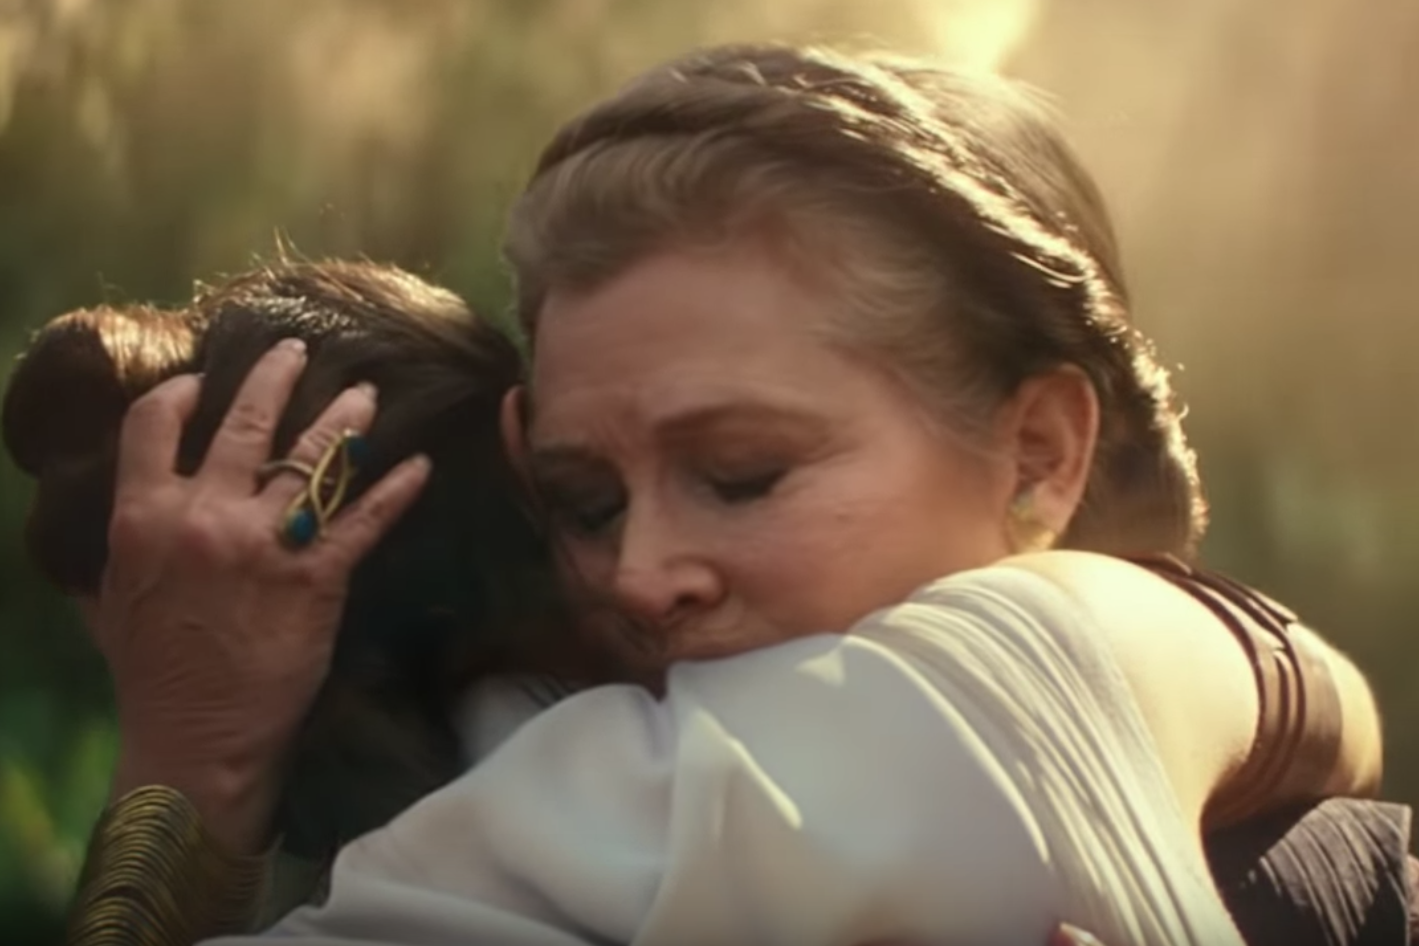 Leia's return